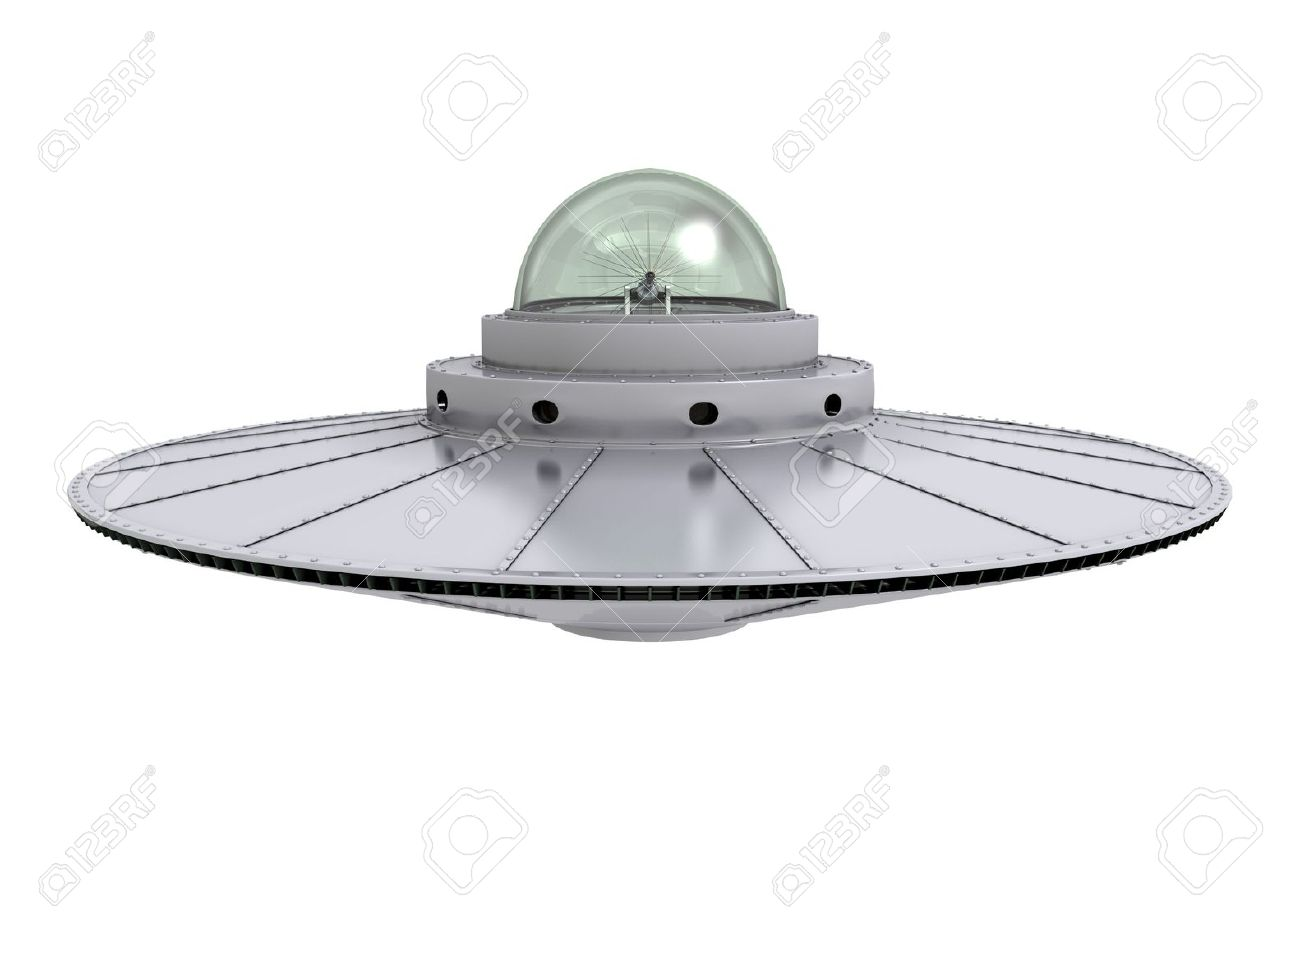 Ufo Transparent Background ufo with transparent dome